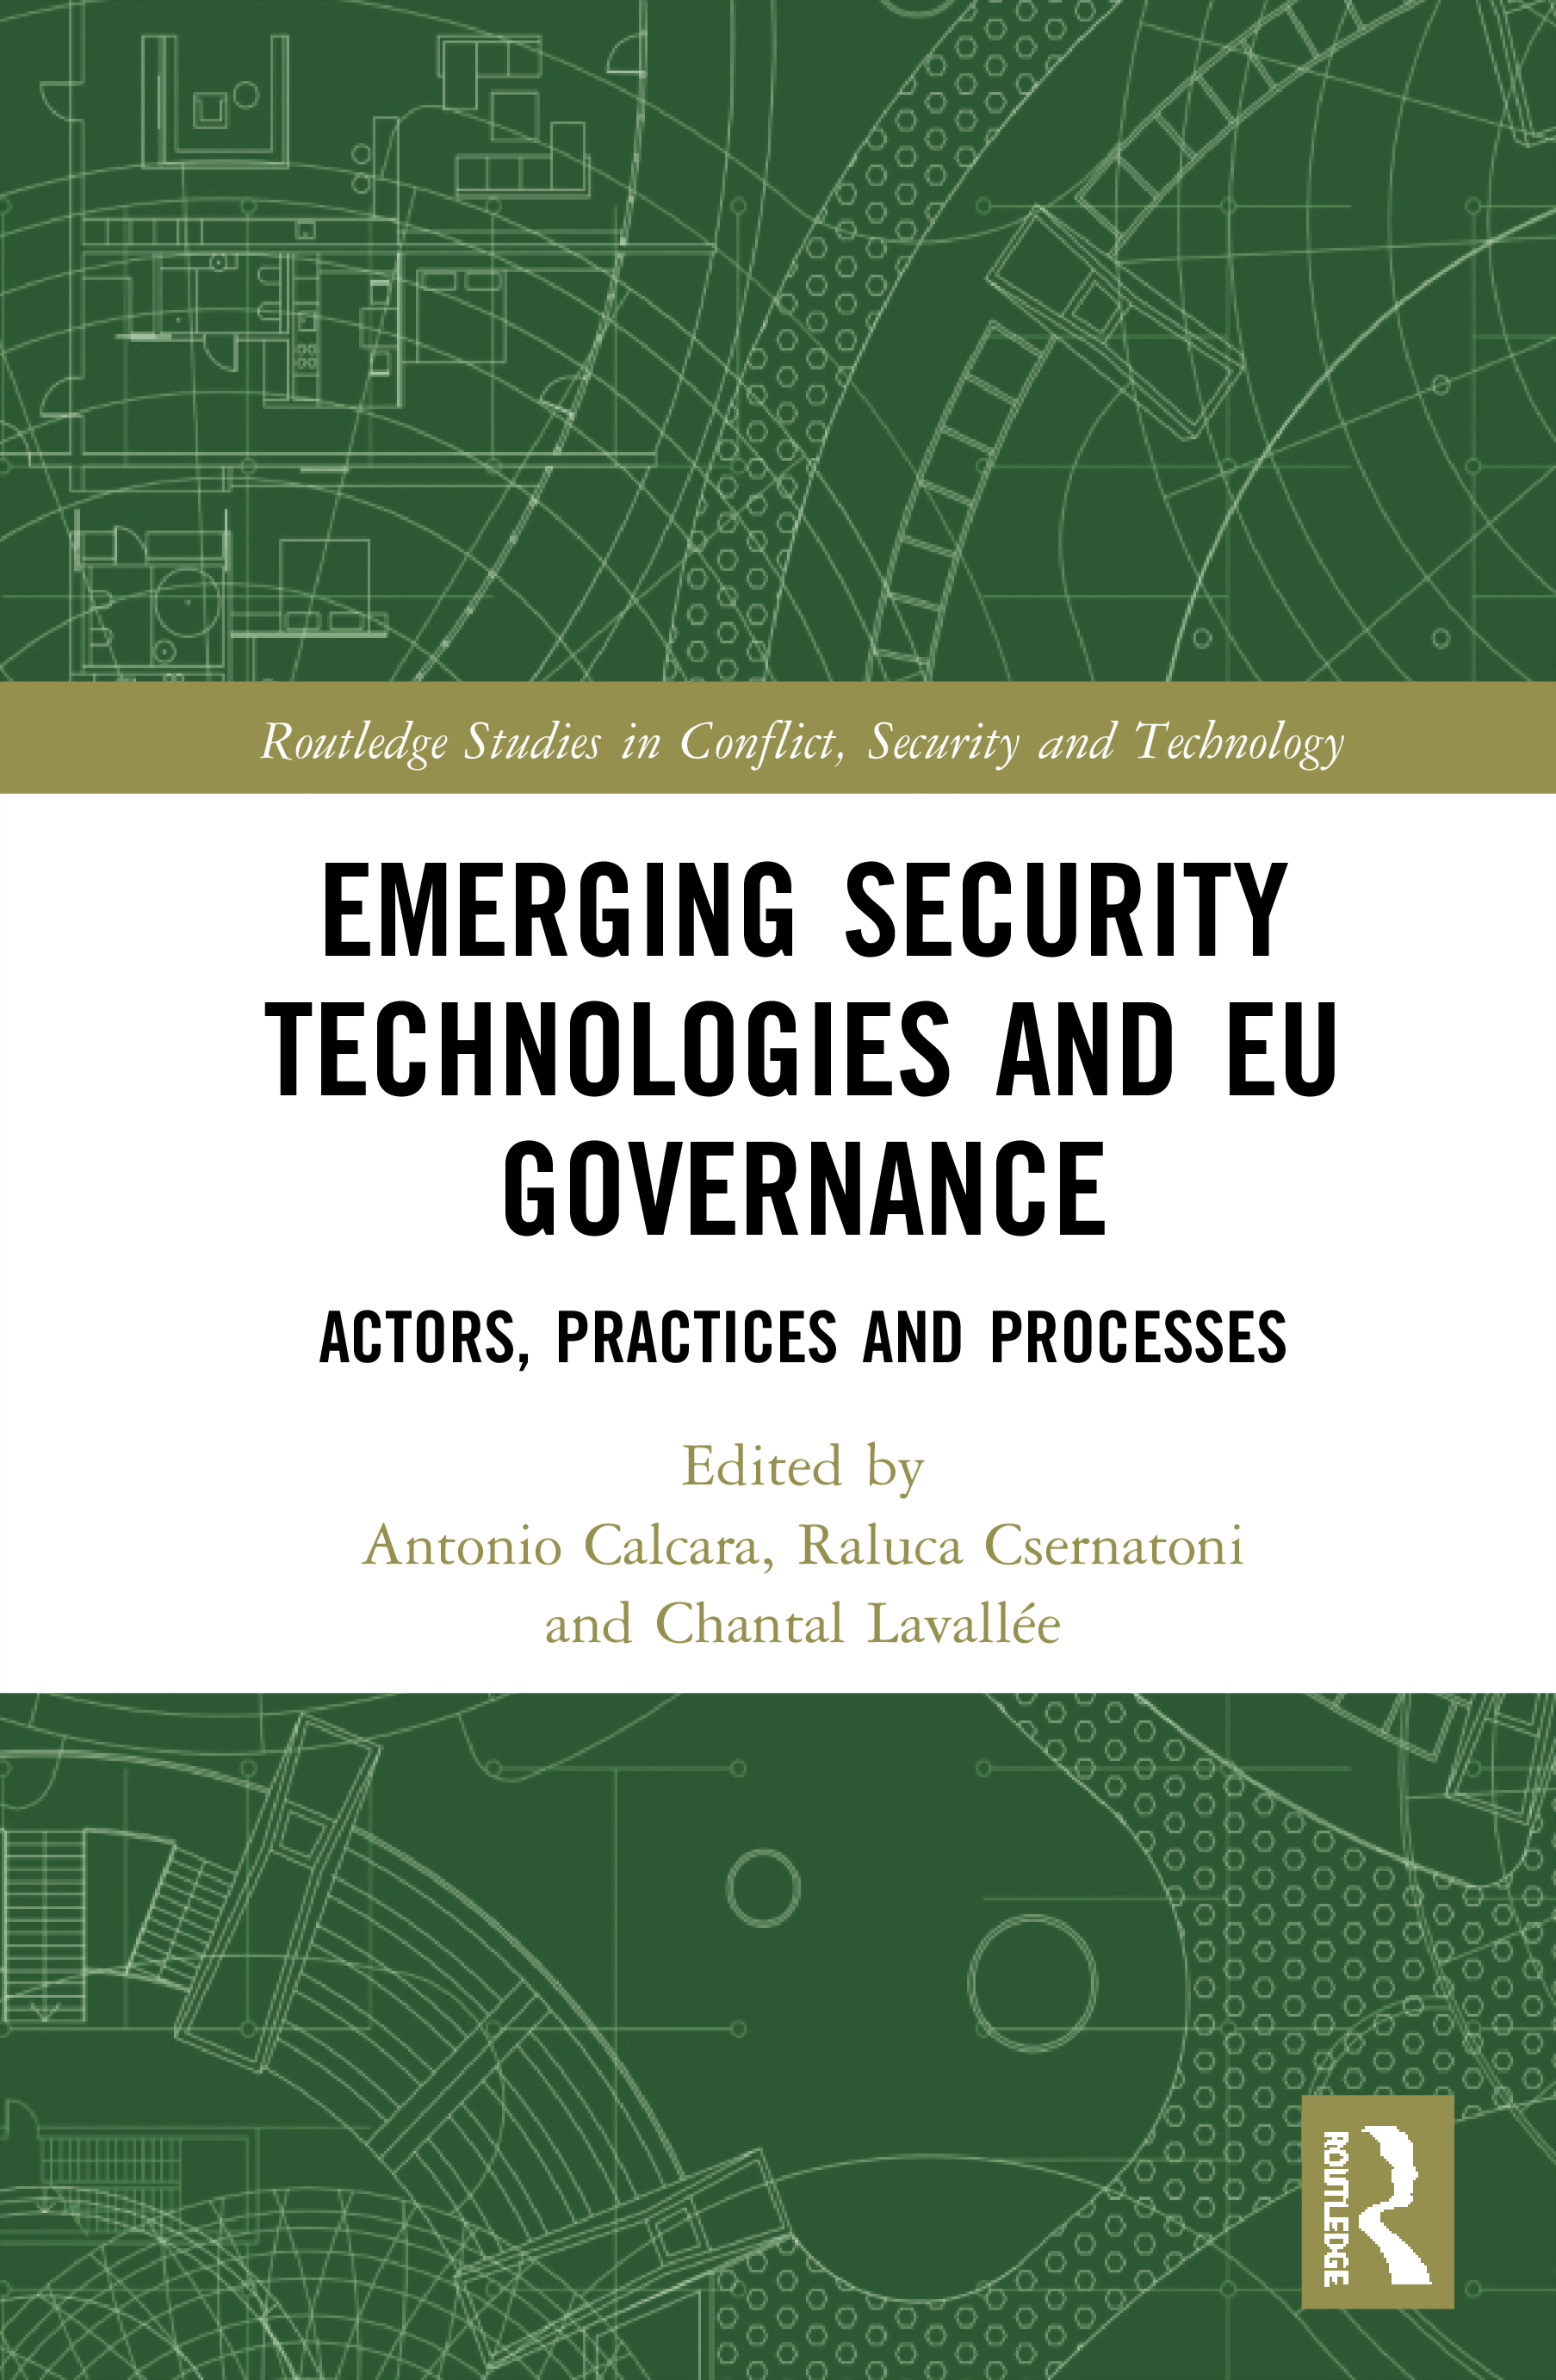 Emerging Security Technologies and EU Governance: Actors, Practices and Processes book cover